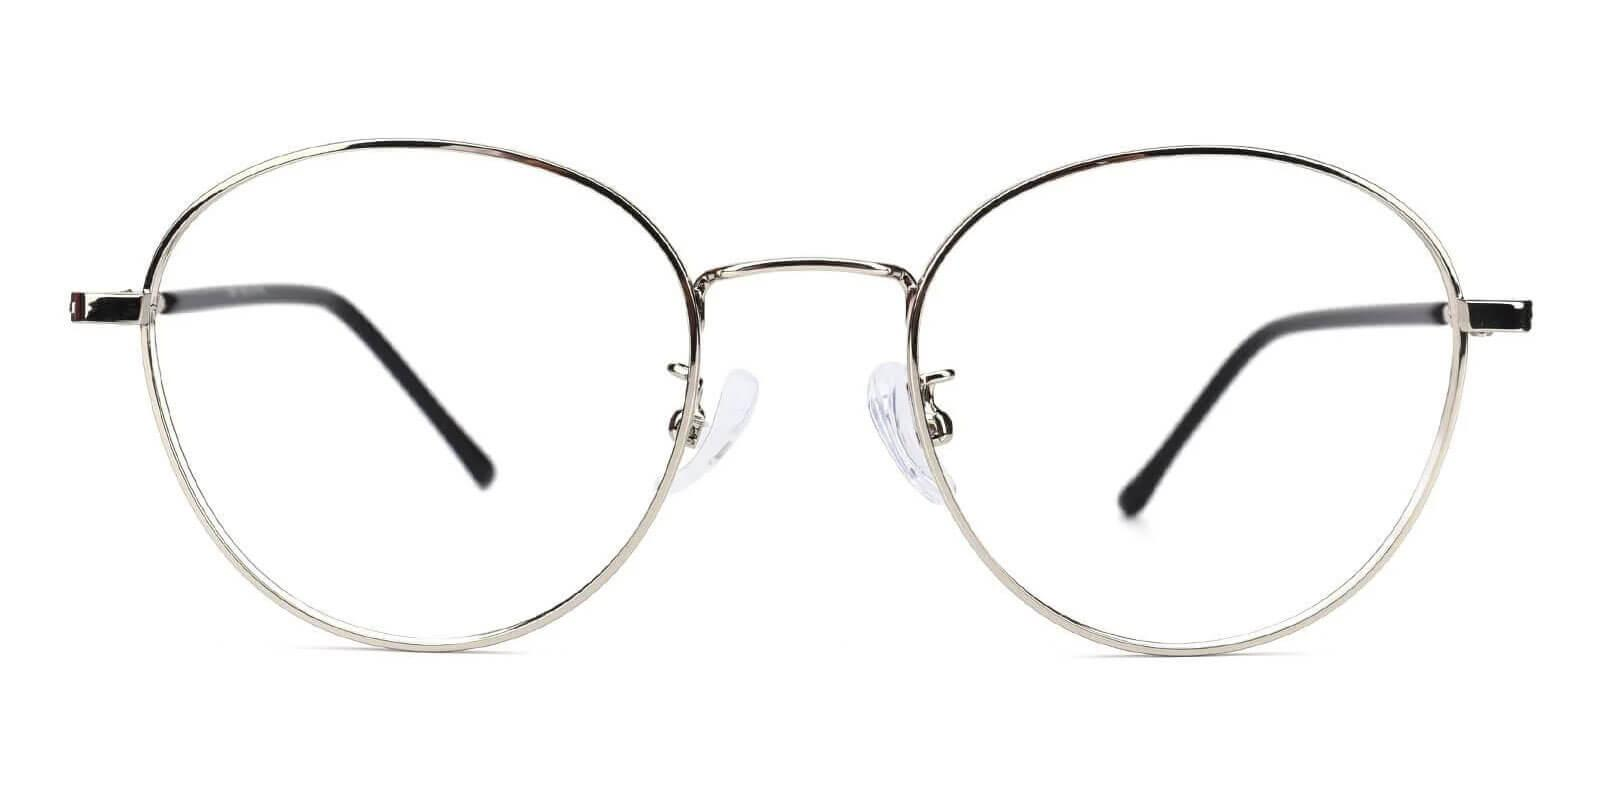 Savvy Silver Metal Eyeglasses , Lightweight , NosePads Frames from ABBE Glasses